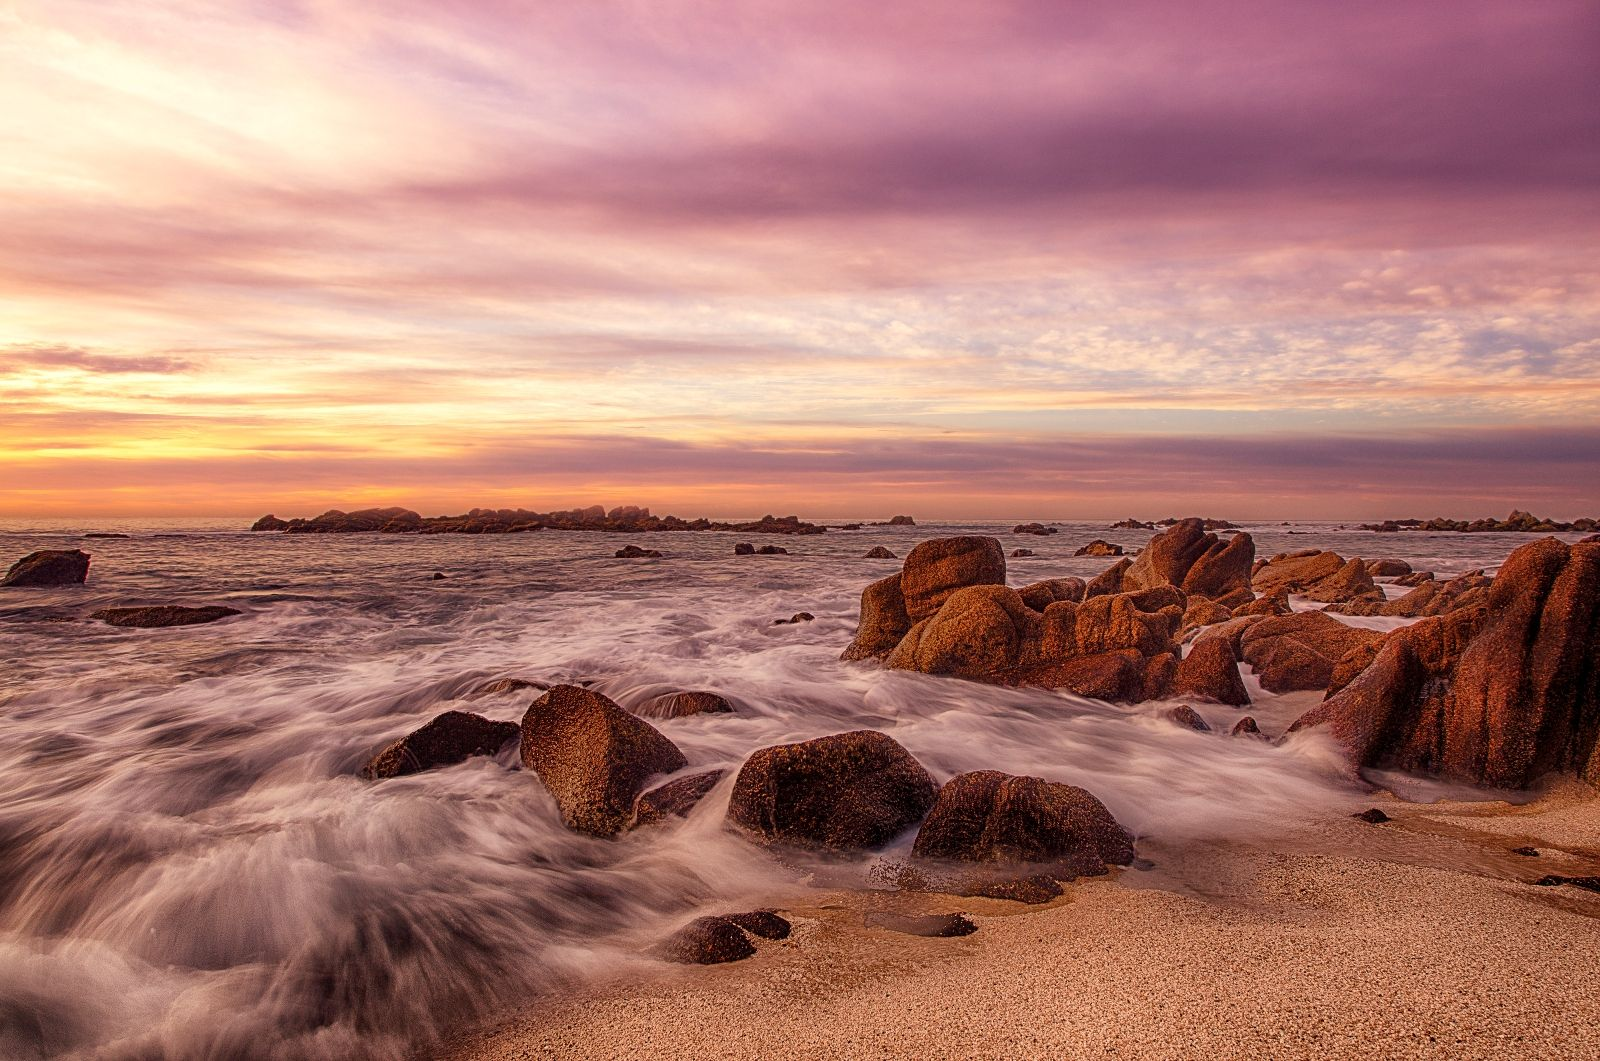 water rushes by rocks near a beach front